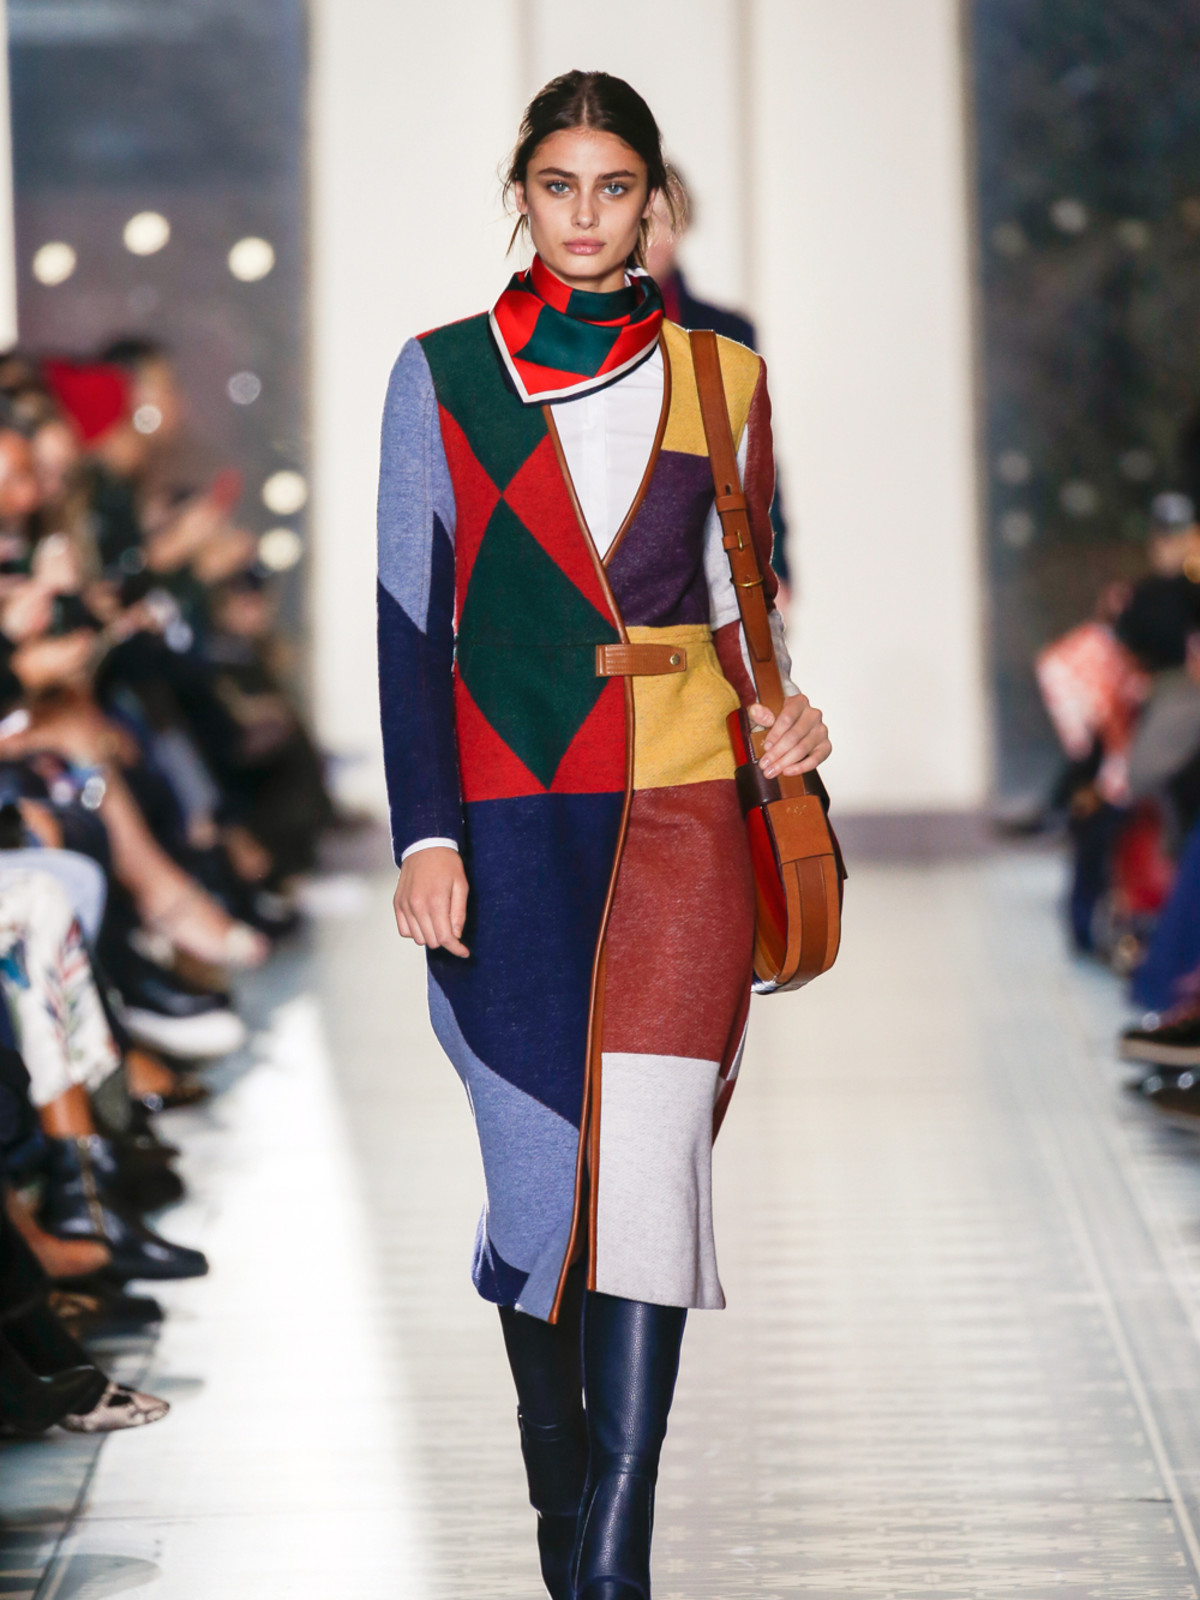 Tory Burch fall 2016 collection Look 1